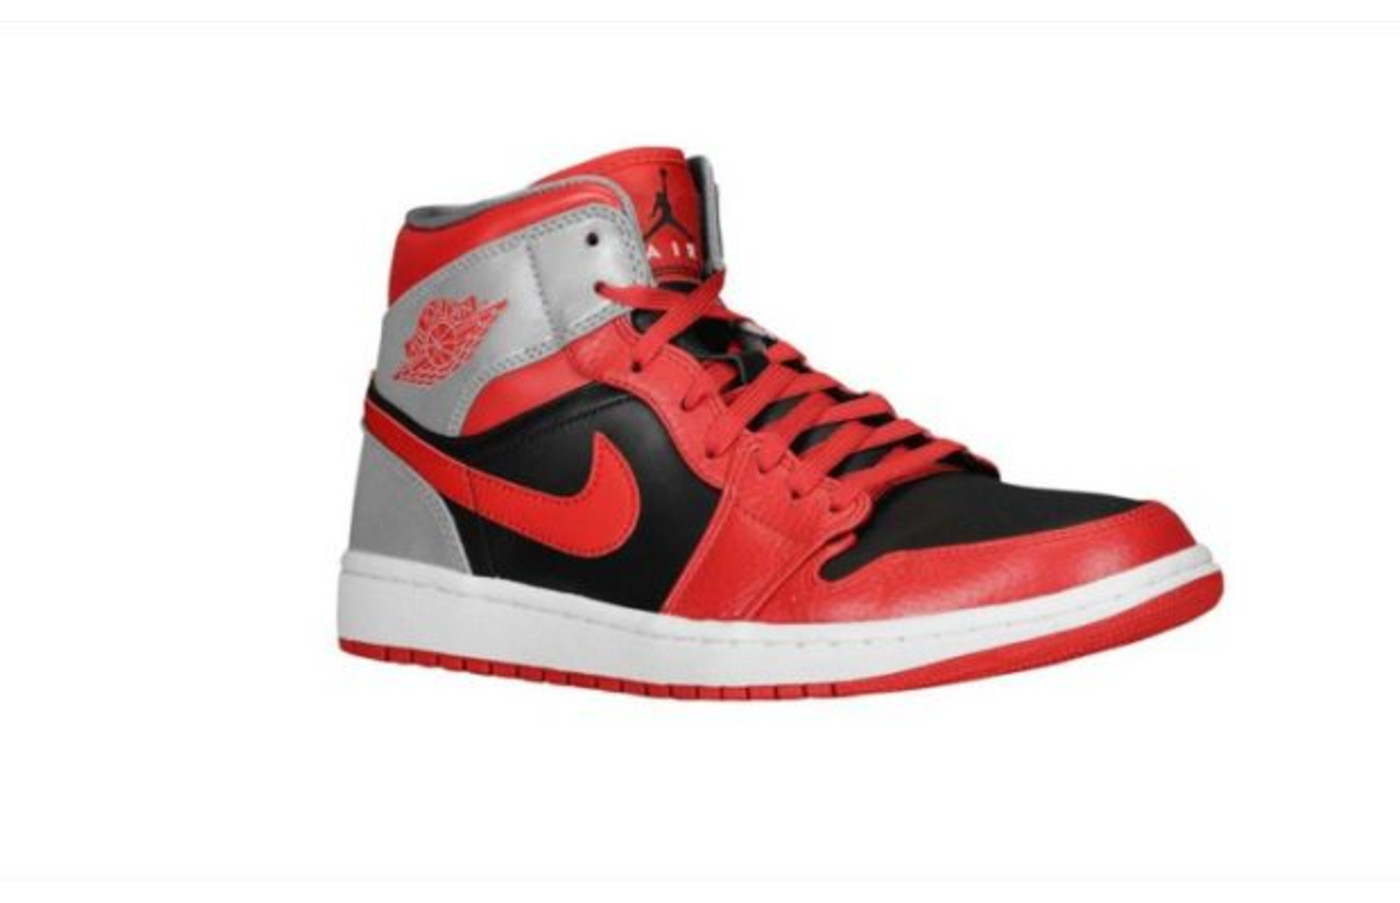 Dope Jordans Available for Under Retail